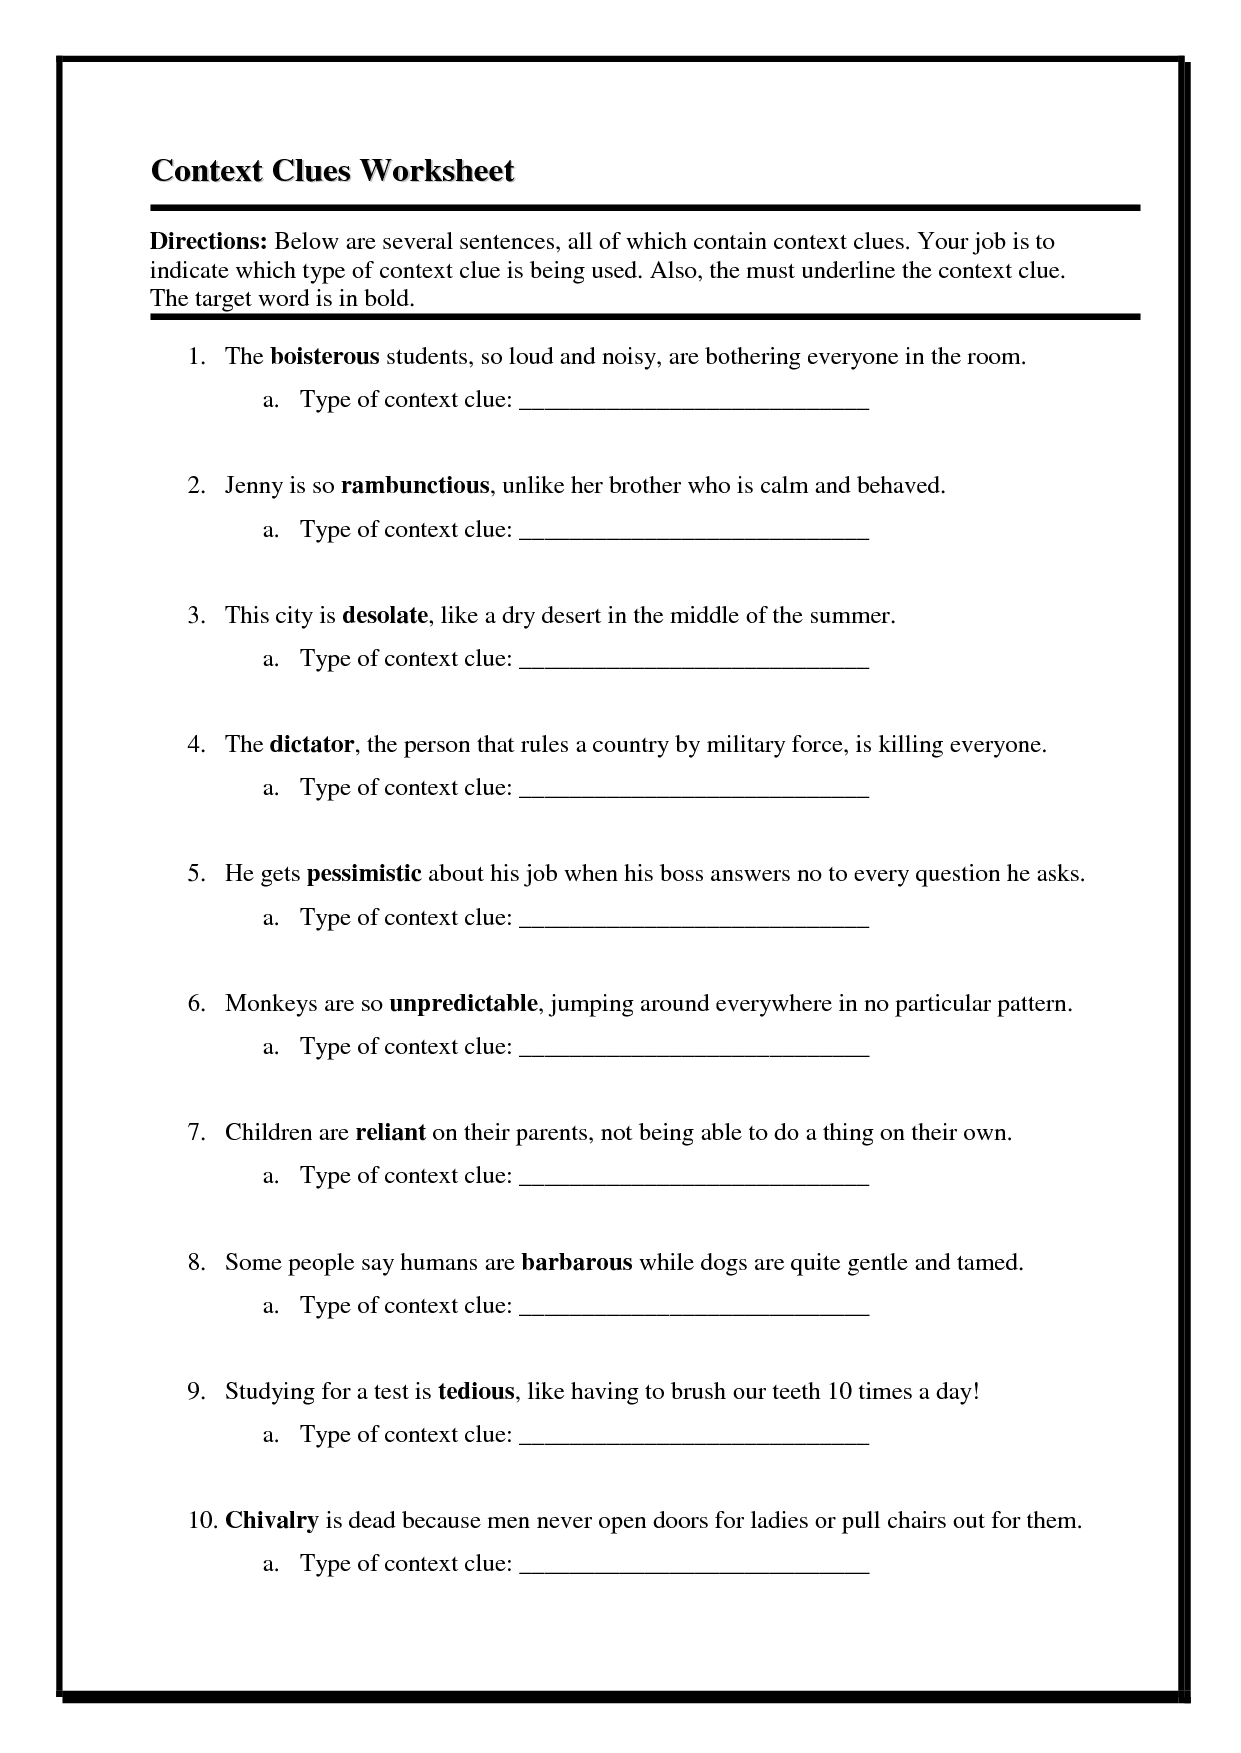 hight resolution of 25 Best 4th Grade Worksheets images on Best Worksheets Collection